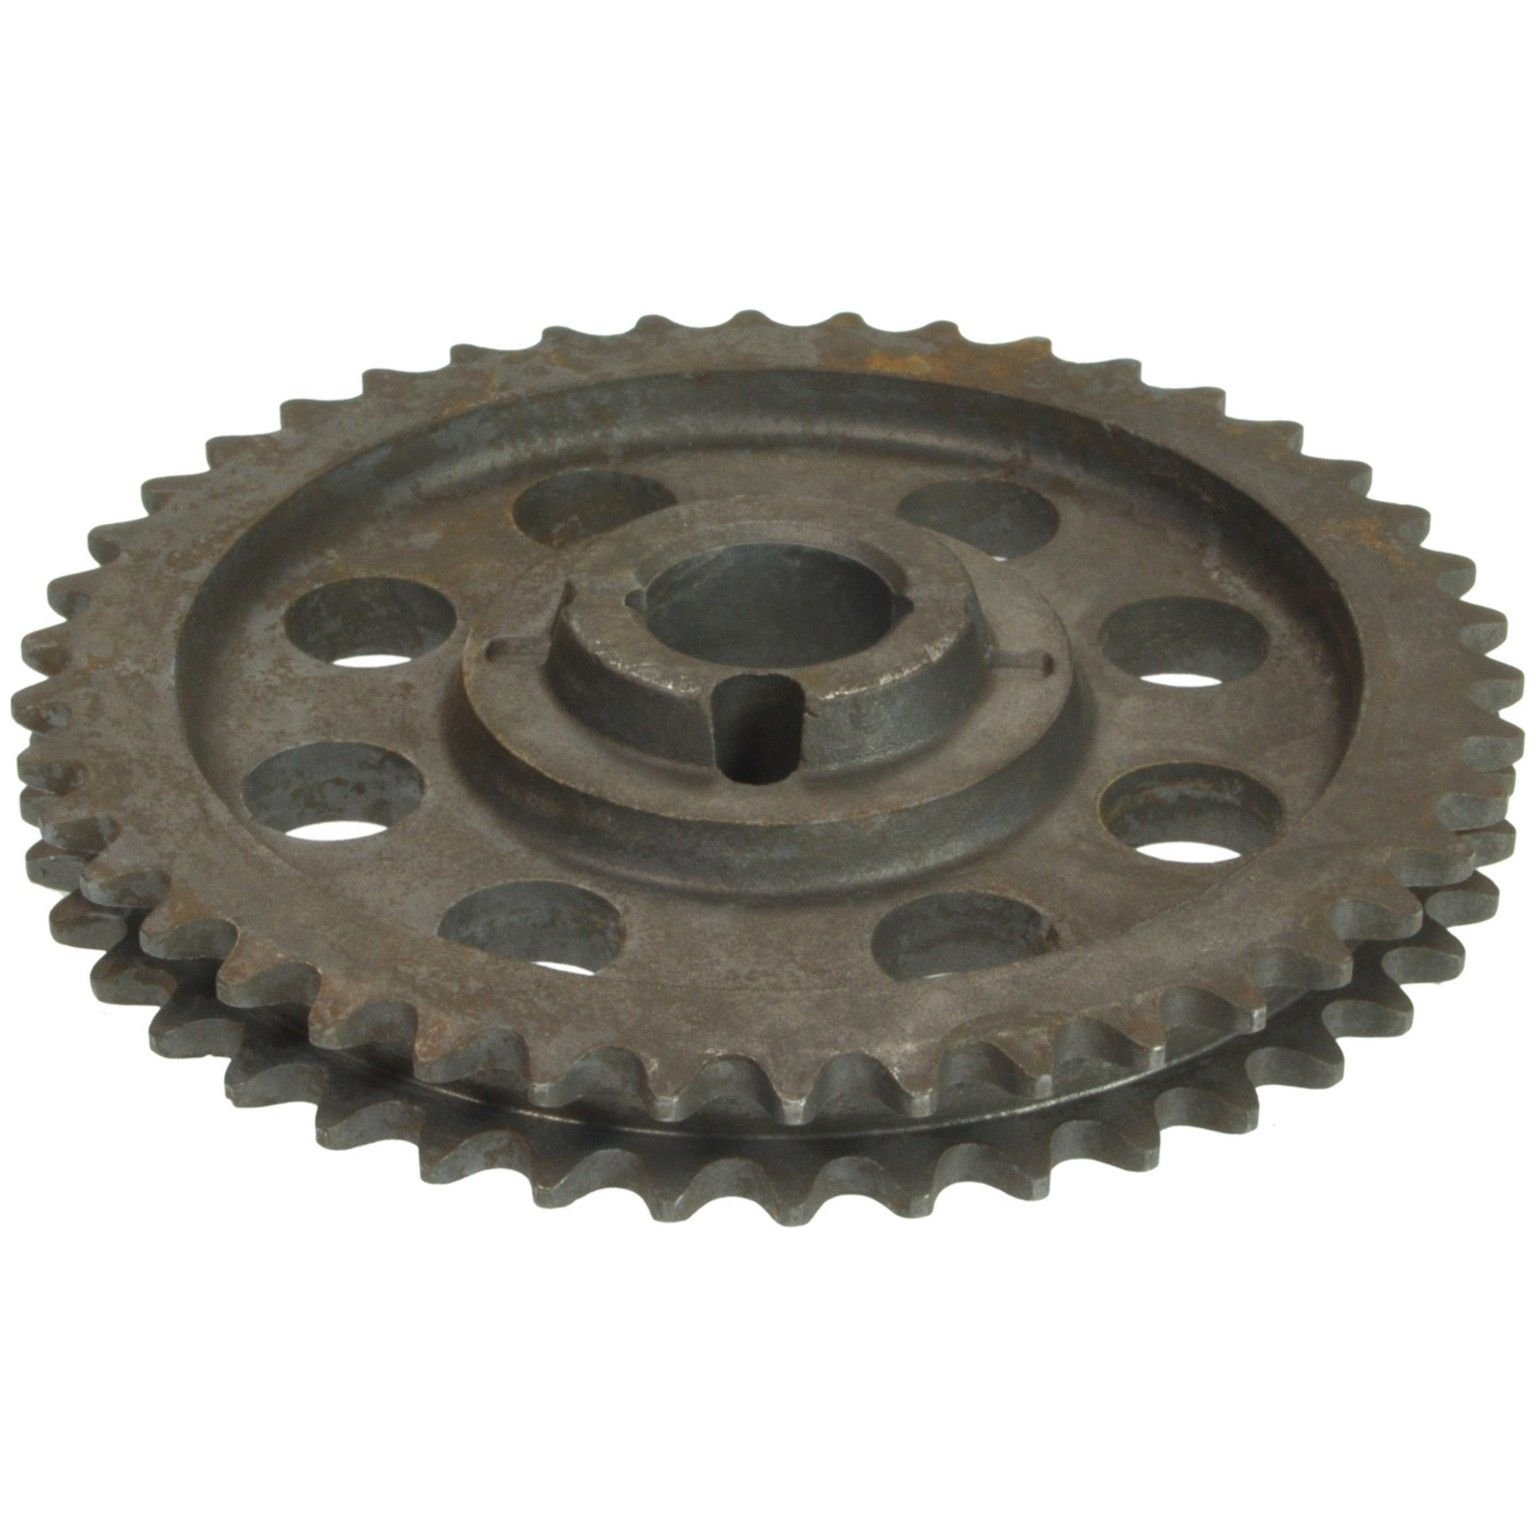 Ford F 150 Engine Timing Camshaft Sprocket Replacement Cloyes 1986 8 Cyl 58l Sealed Power 223 612 W Rlr Type Chain Double Row 900 Thick Cam Hub 42 Teeth